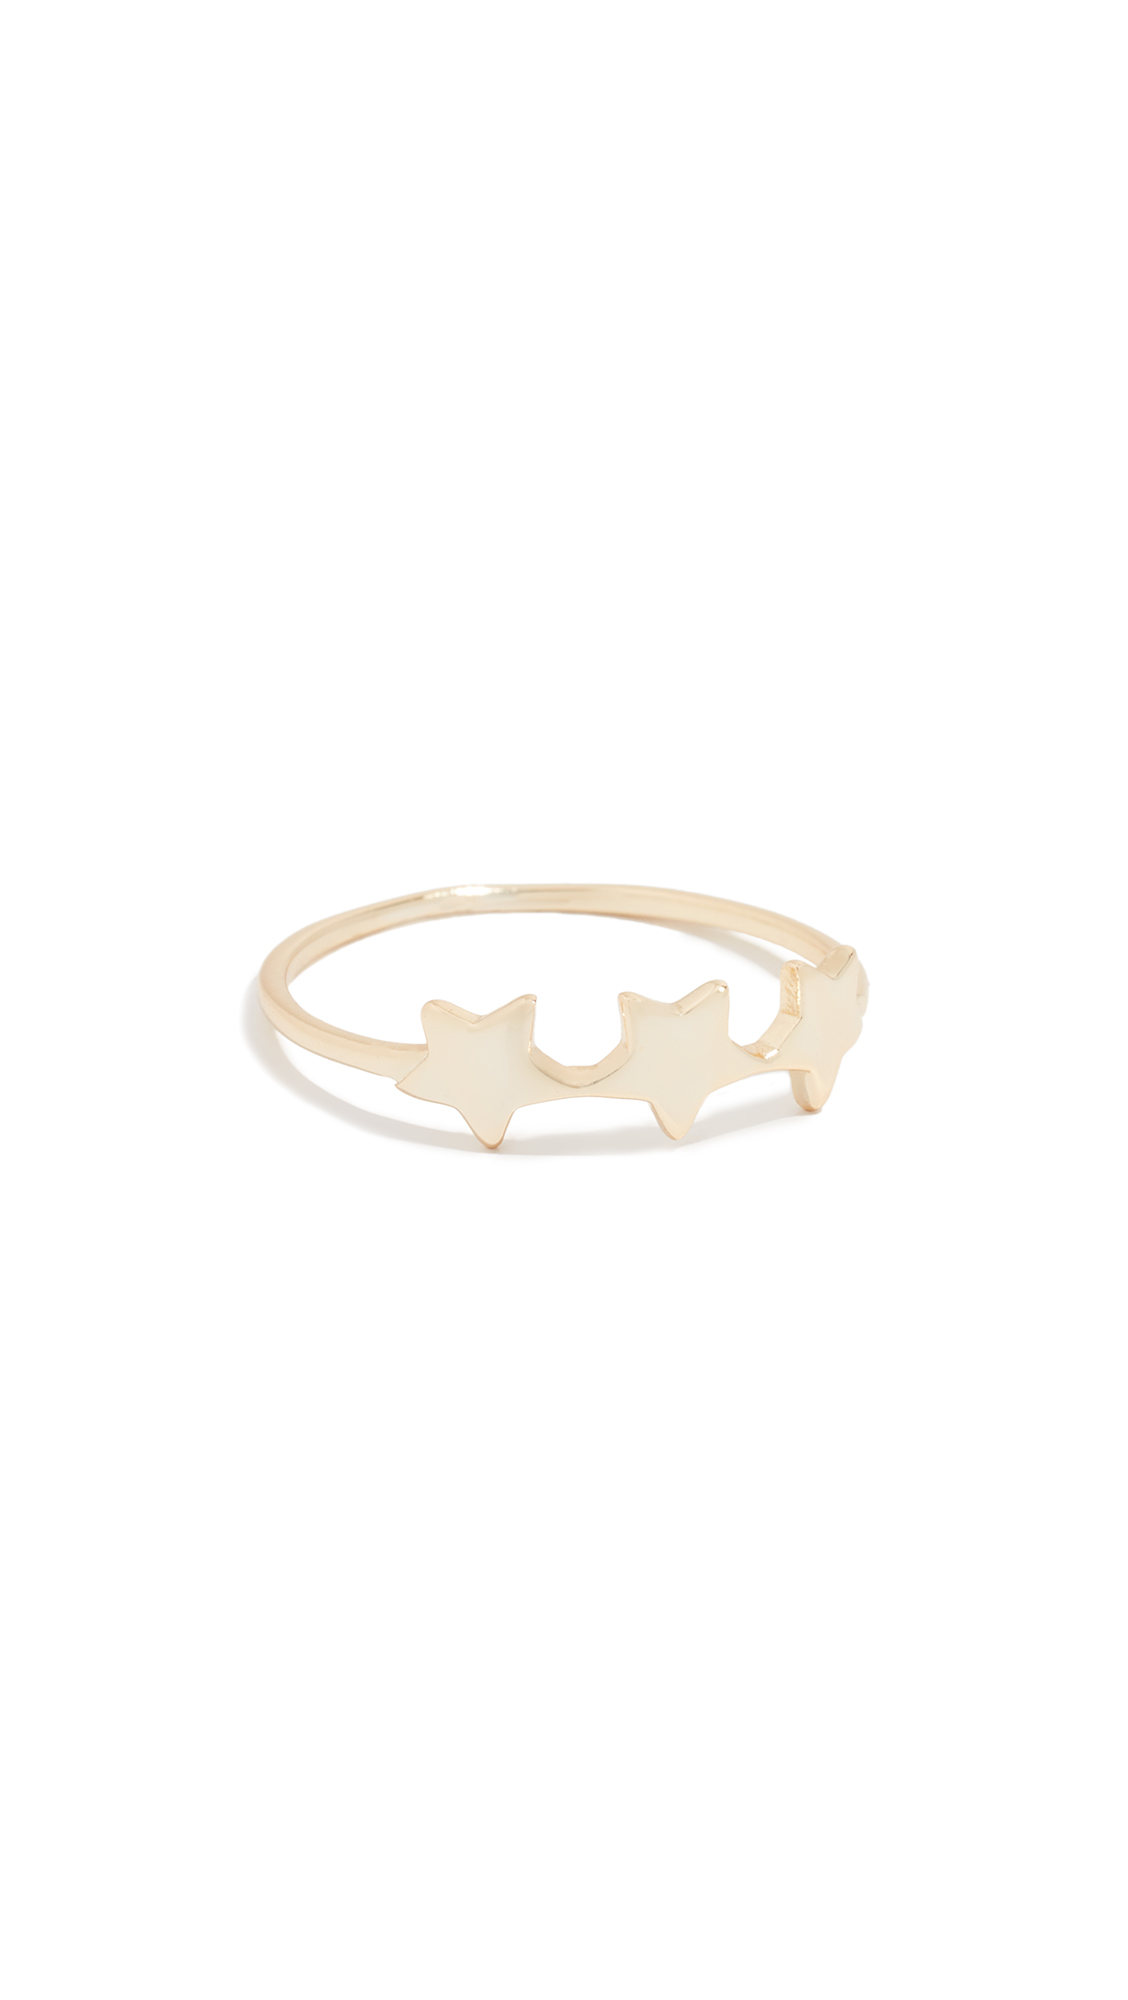 KINDRED Star Ring in Yellow Gold